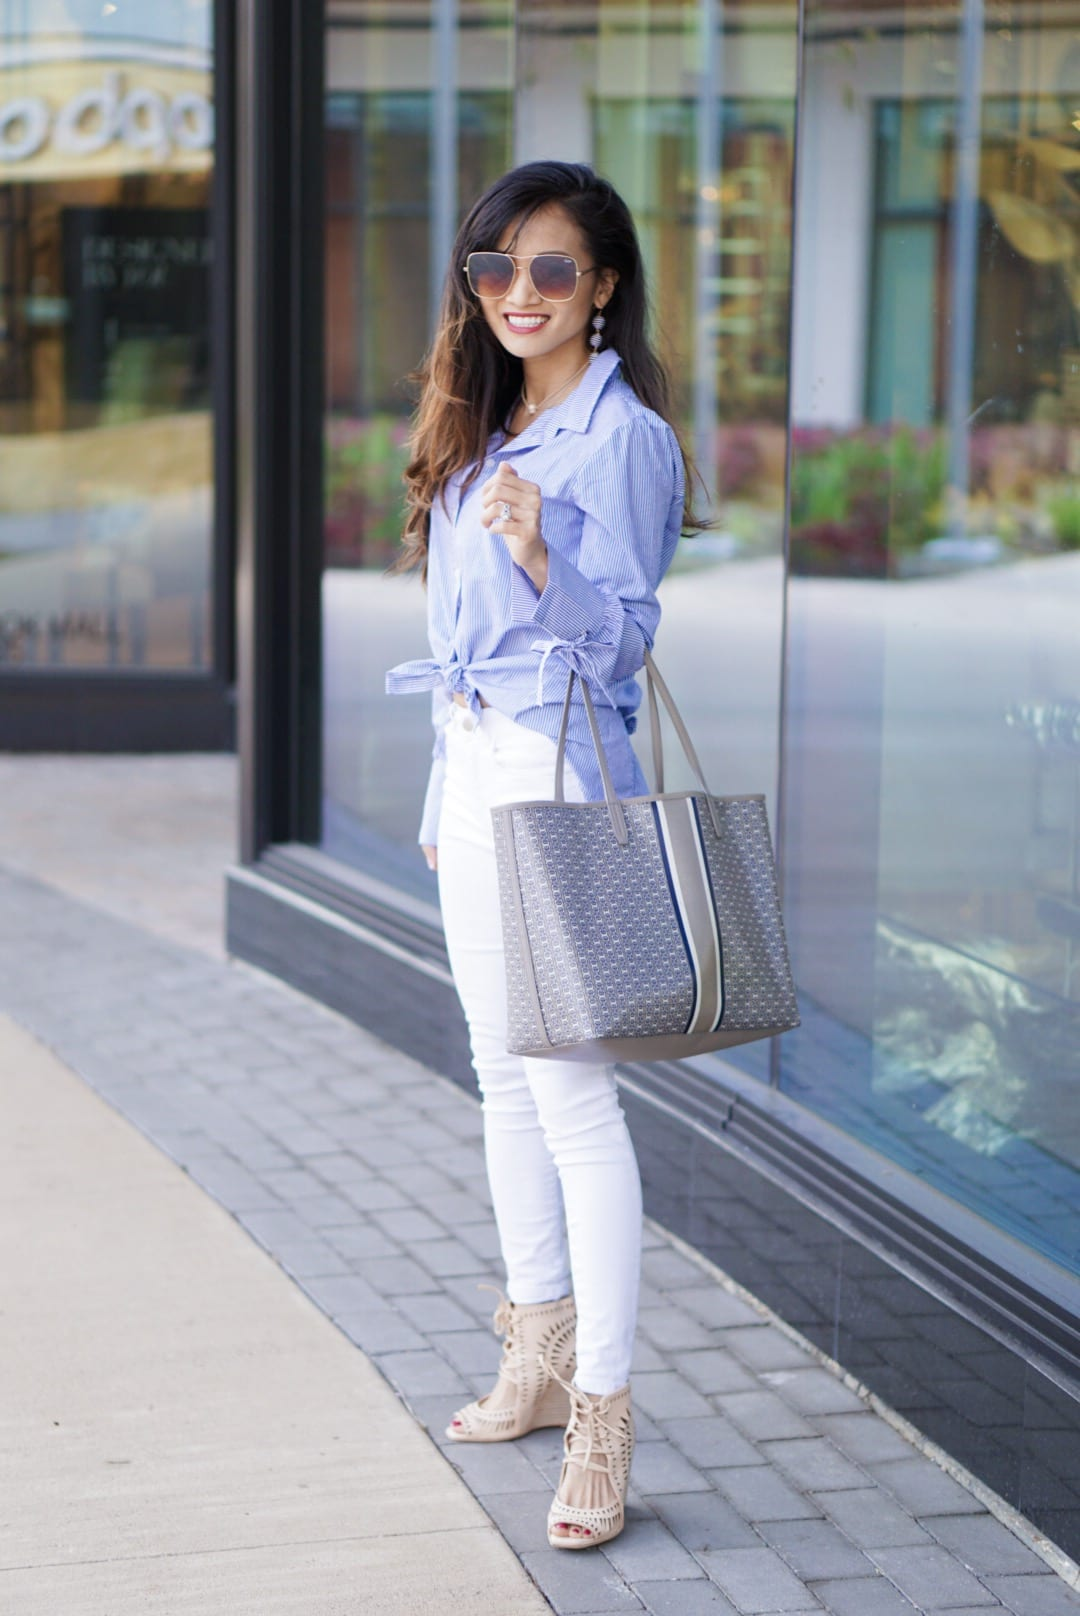 BLUE AND WHITE STRIPED BUTTON DOWN, WHITE PANTS, SPRING LOOK, SPRING STYLE, SANCTUARY TOP, MOM STYLE, MOM FASHION,JEFFREY CAMPBELL WEDGES,  Tory burch gemini link tote, bauble bar earrings, quay sunglasses